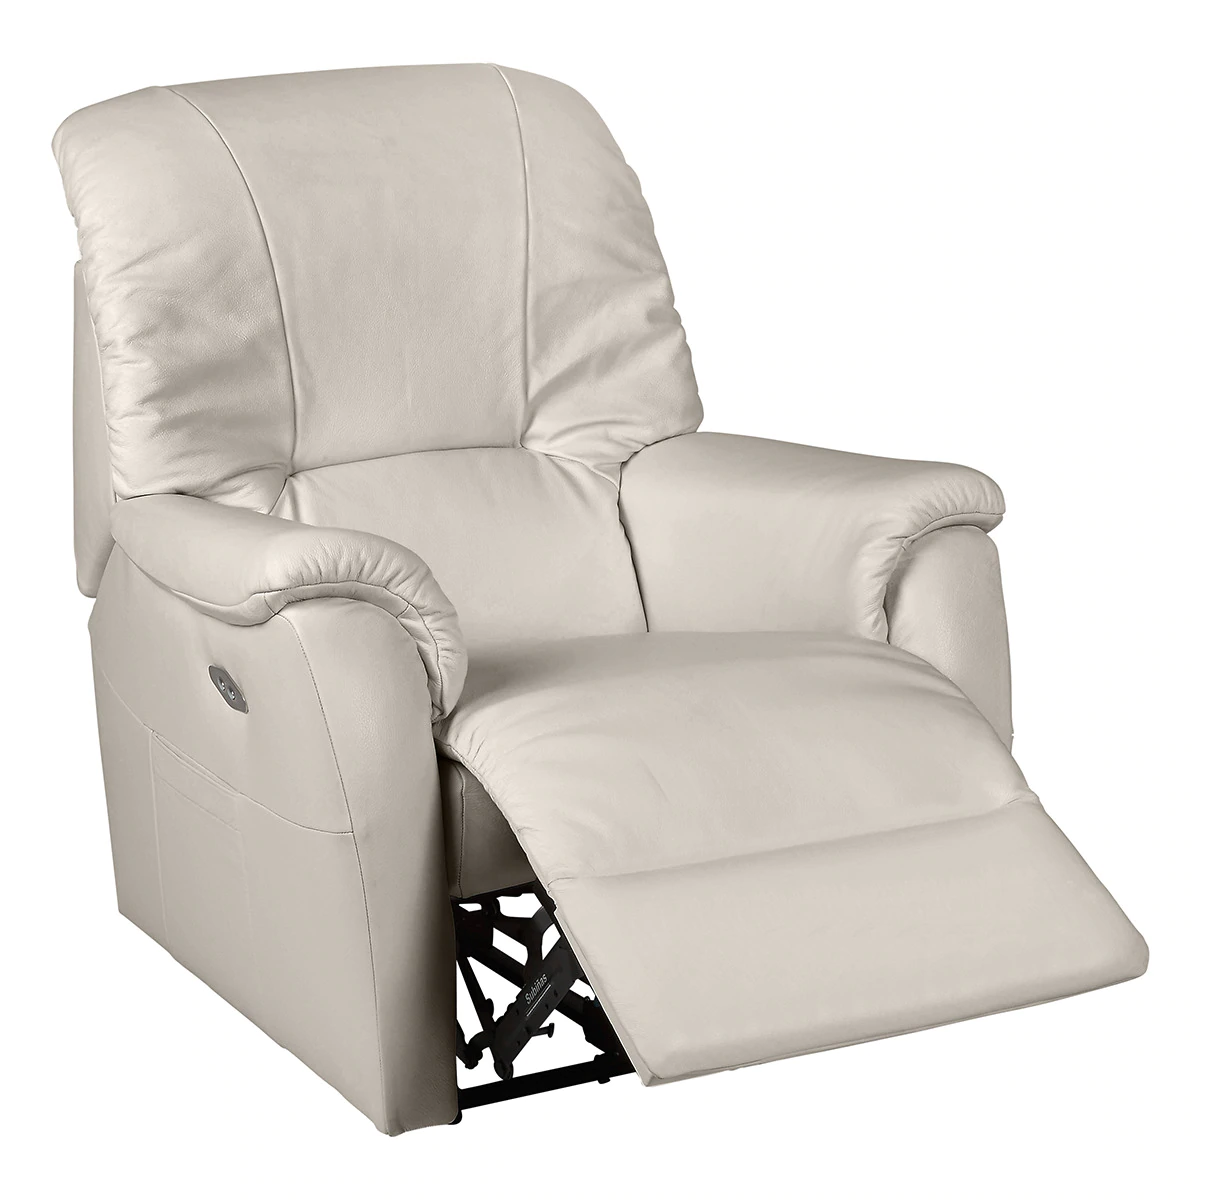 Electric relax leather armchair